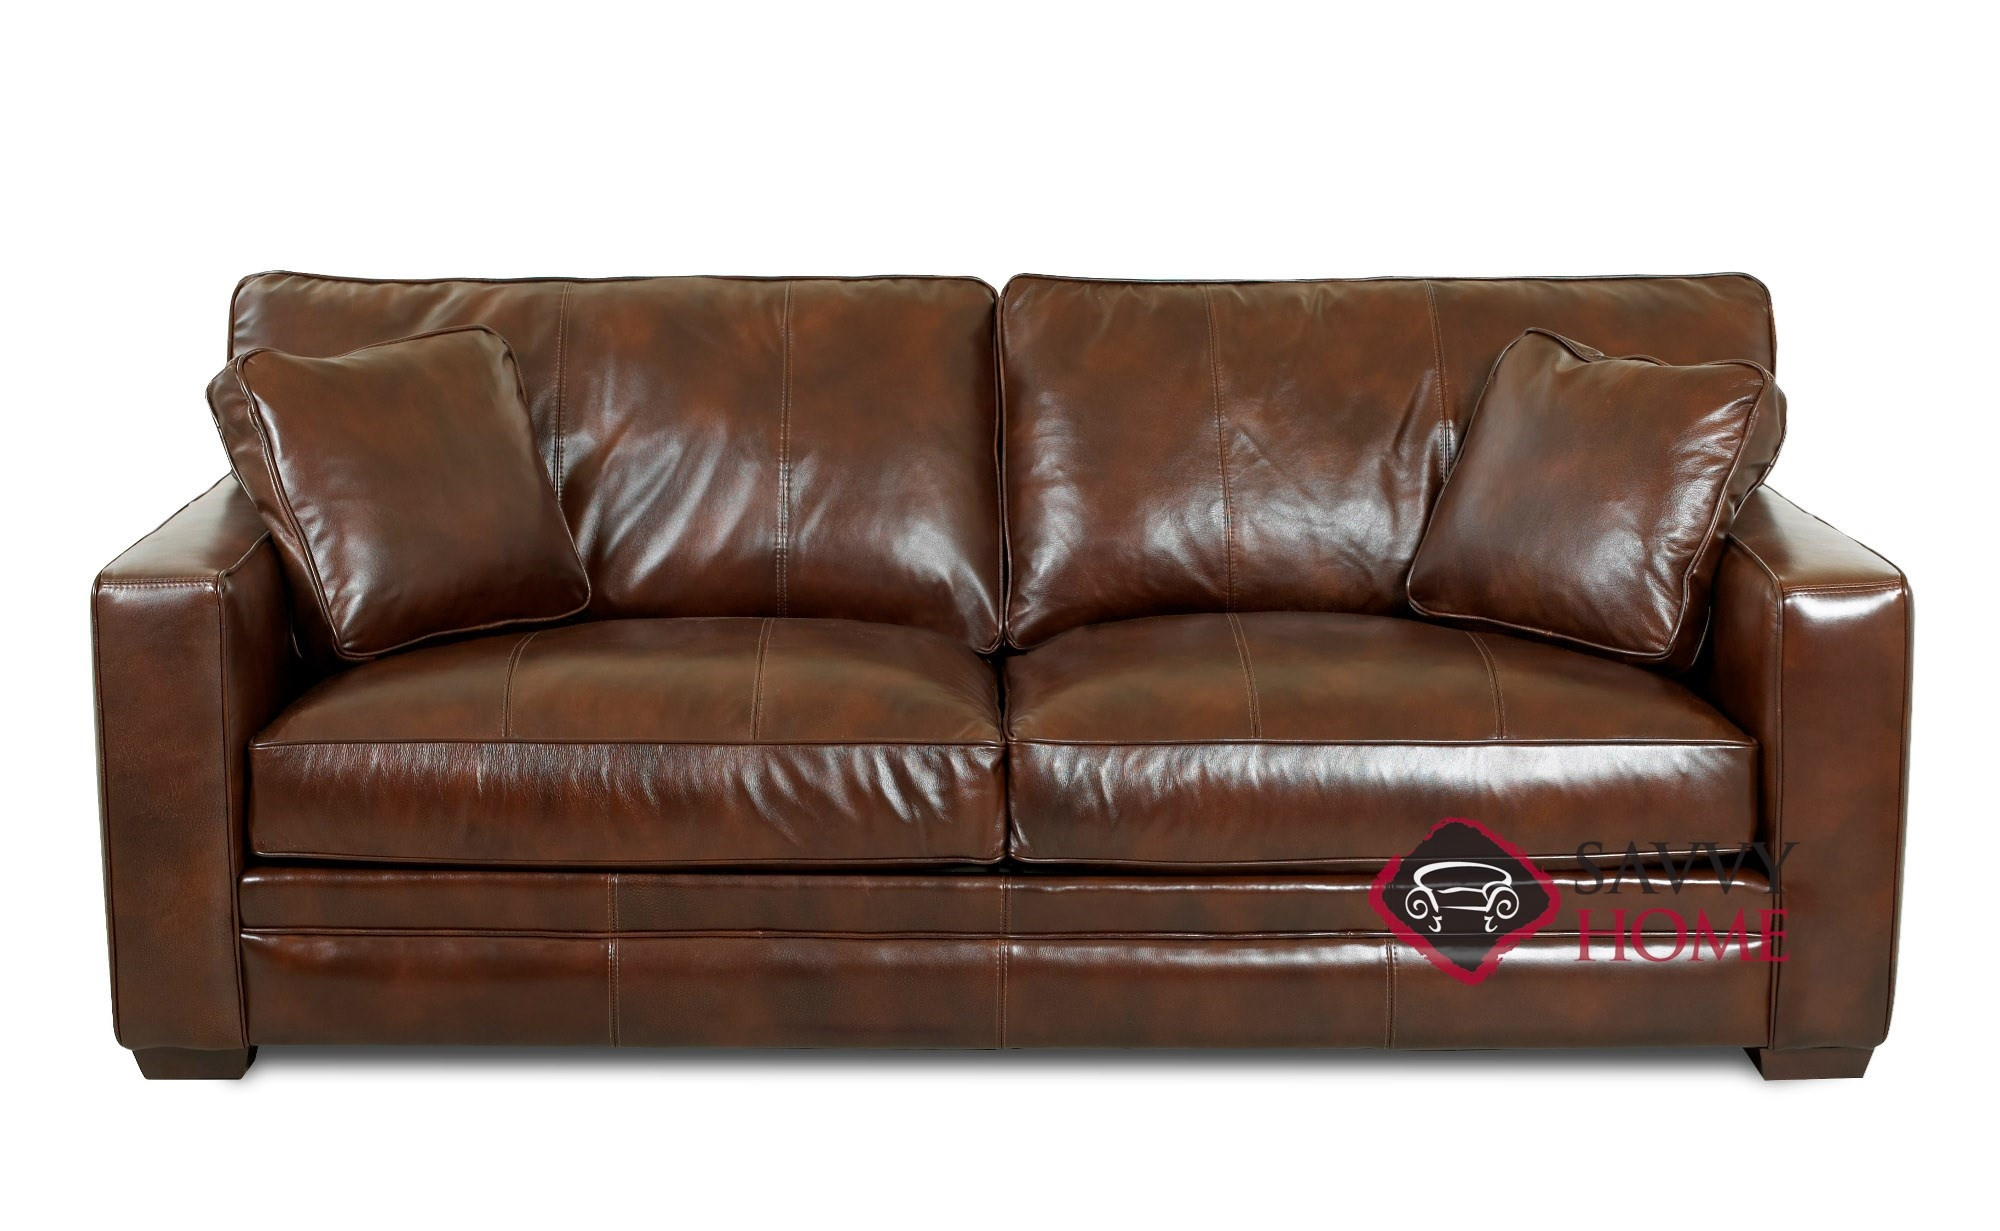 Best ideas about Leather Sofa Sleeper . Save or Pin Chandler Leather Sleeper Sofas Queen by Savvy is Fully Now.